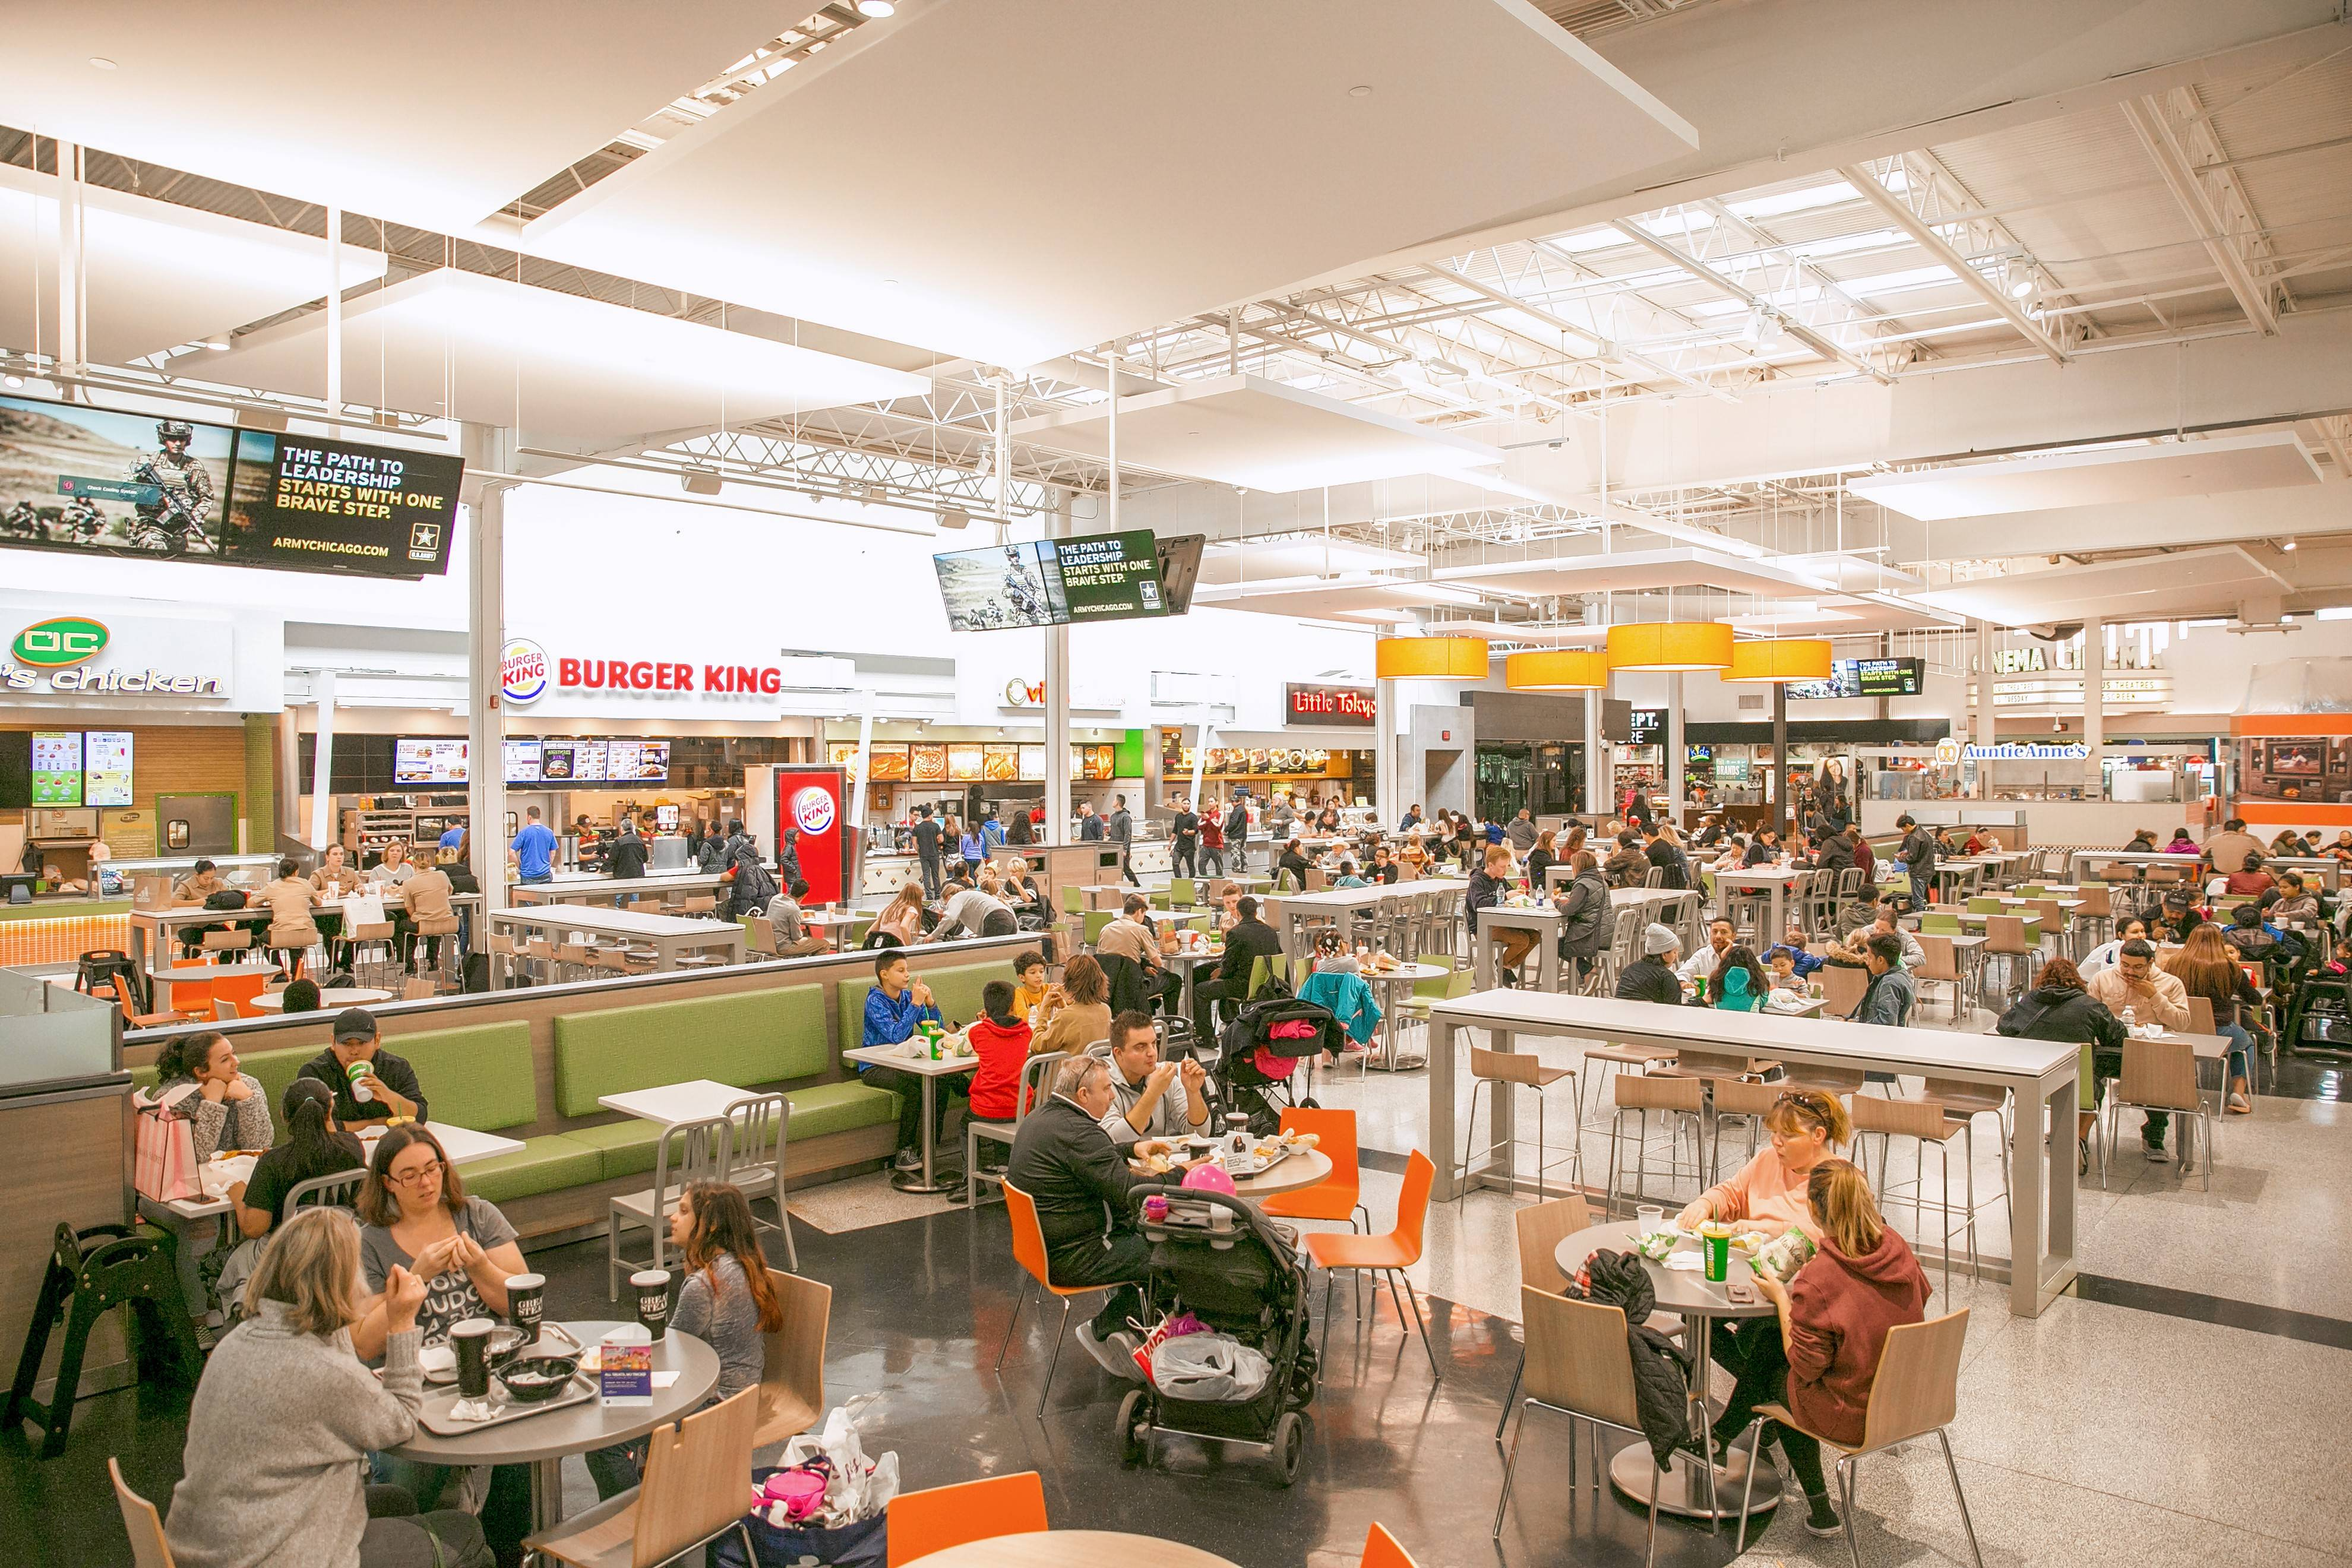 The Dine-O-Rama at Gurnee Mills is one of many areas that received a cosmetic overhaul as part of a nearly completed $6 million renovation project.